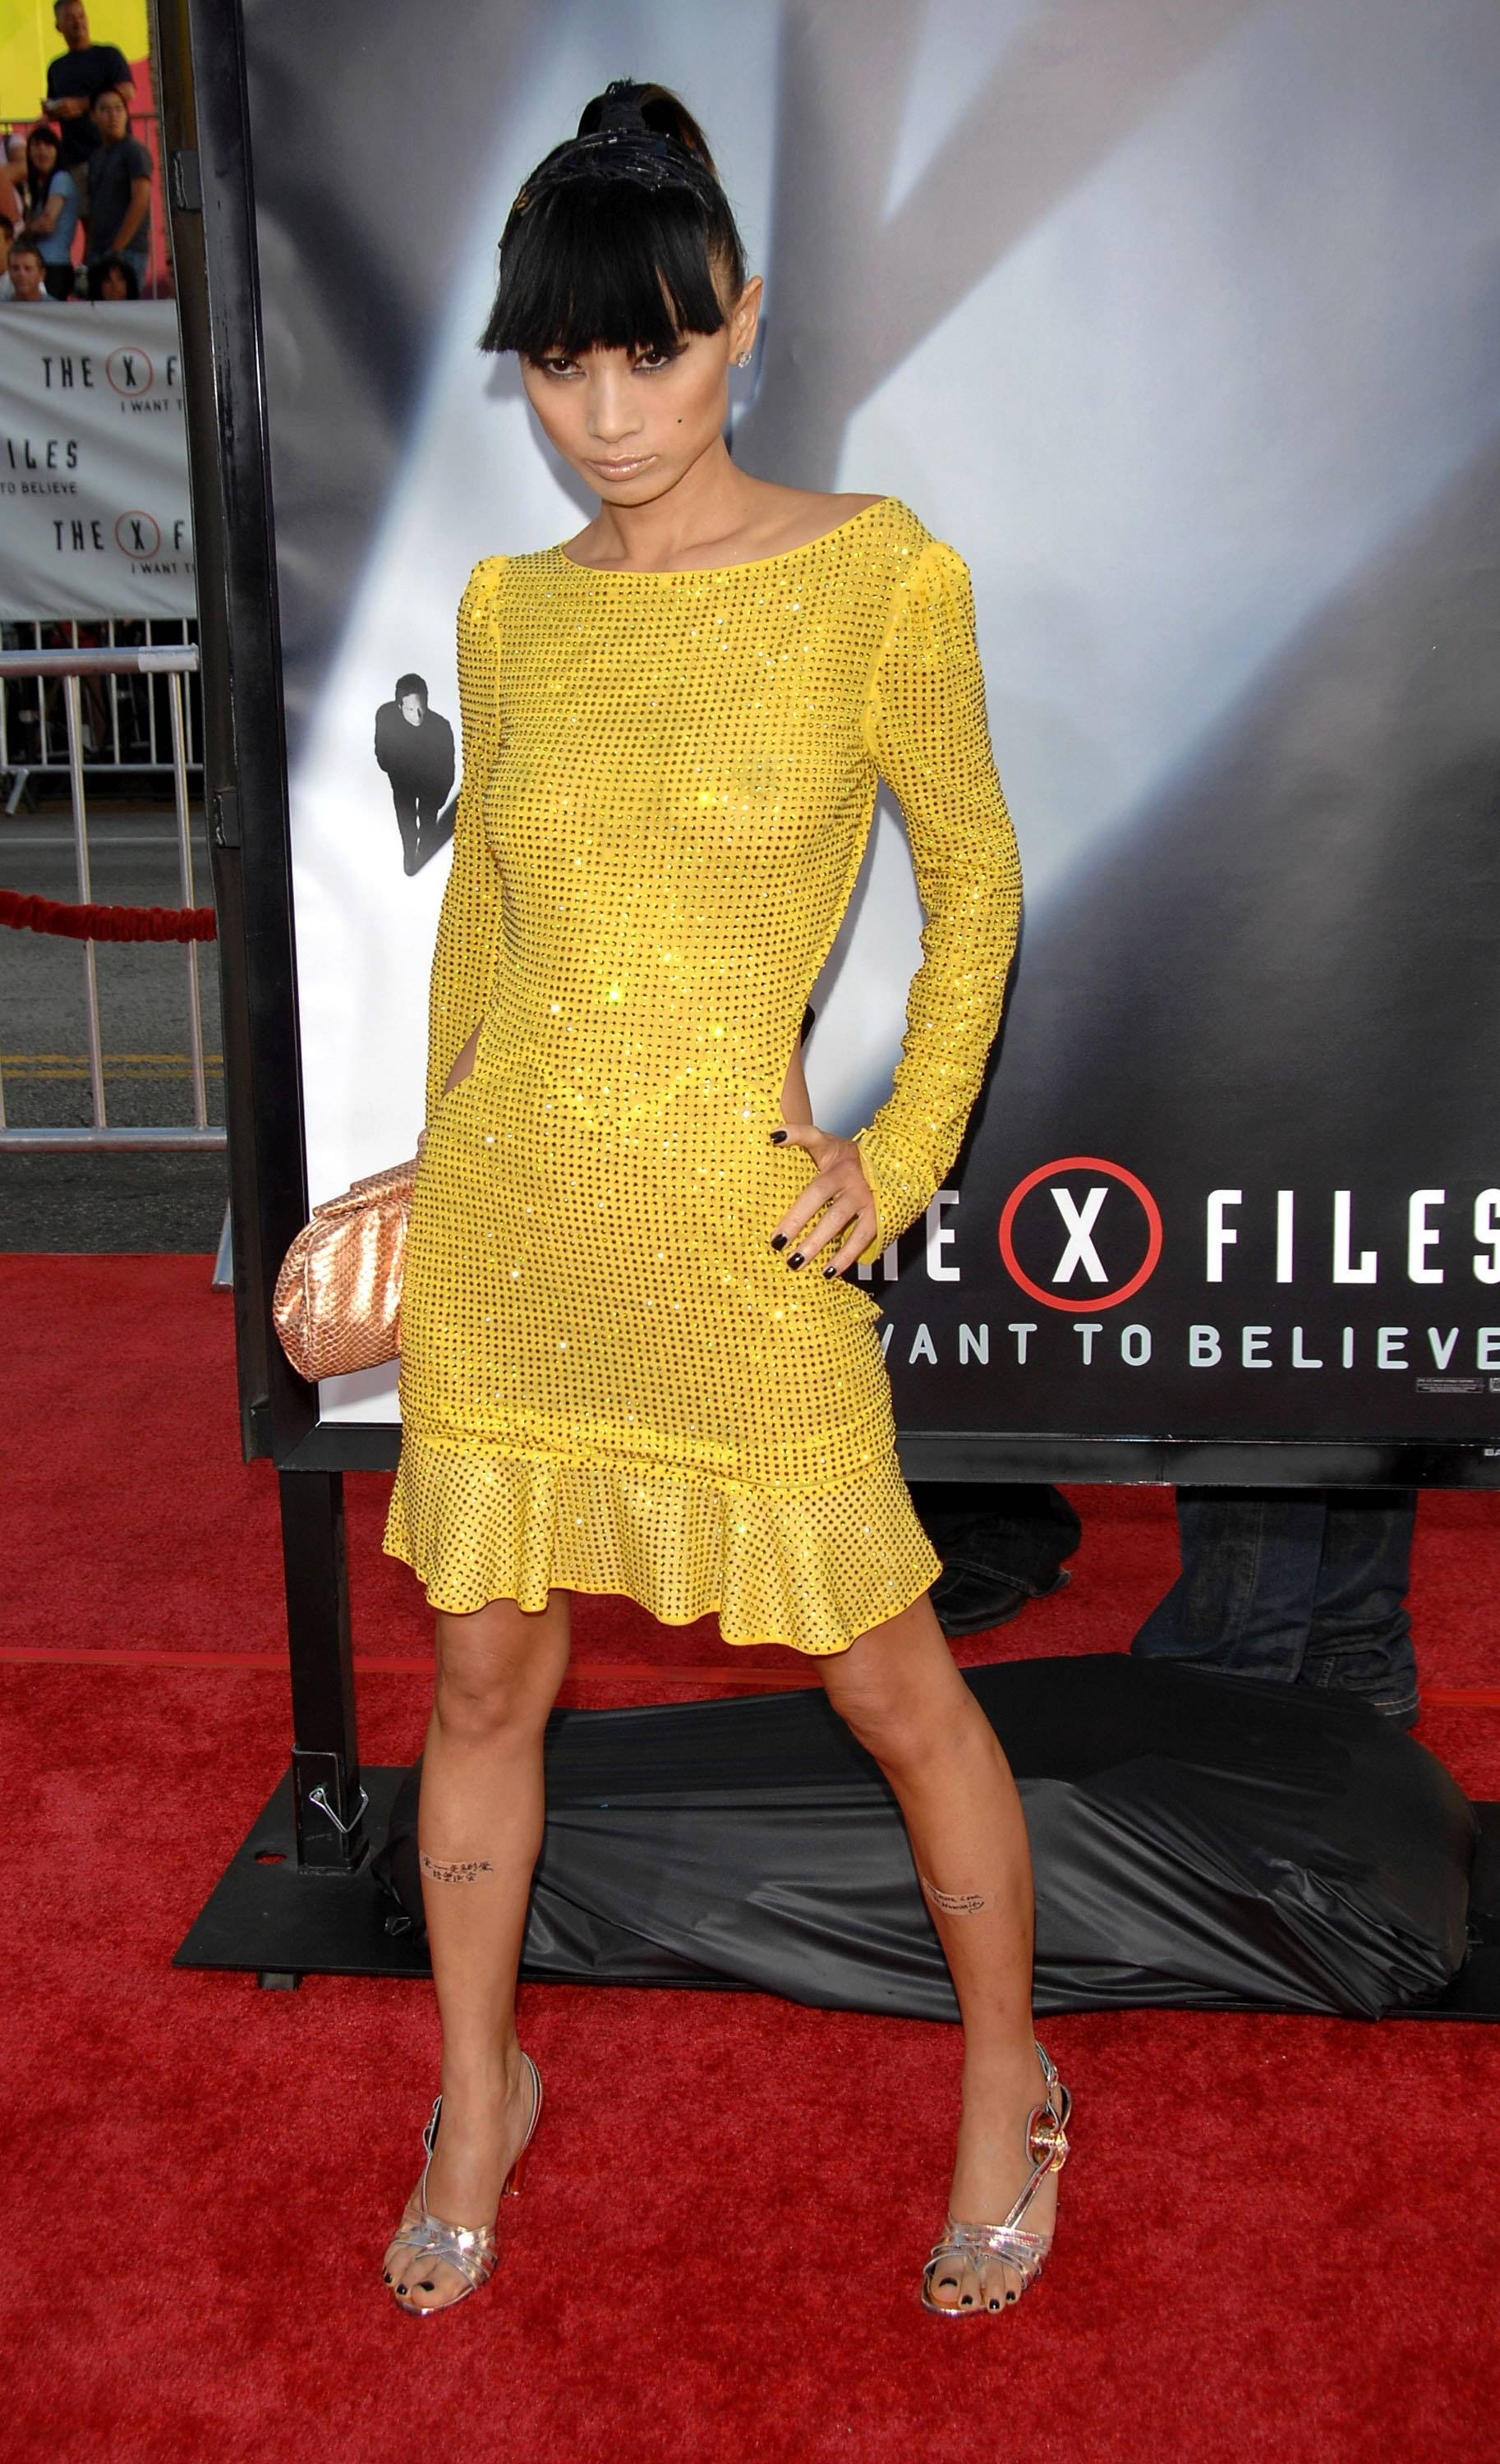 80174_Bai_Ling-The_X_Files_I_Want_To_Believe_World_Premiere_in_Hollywood-xnews2-s003_122_116lo.jpg